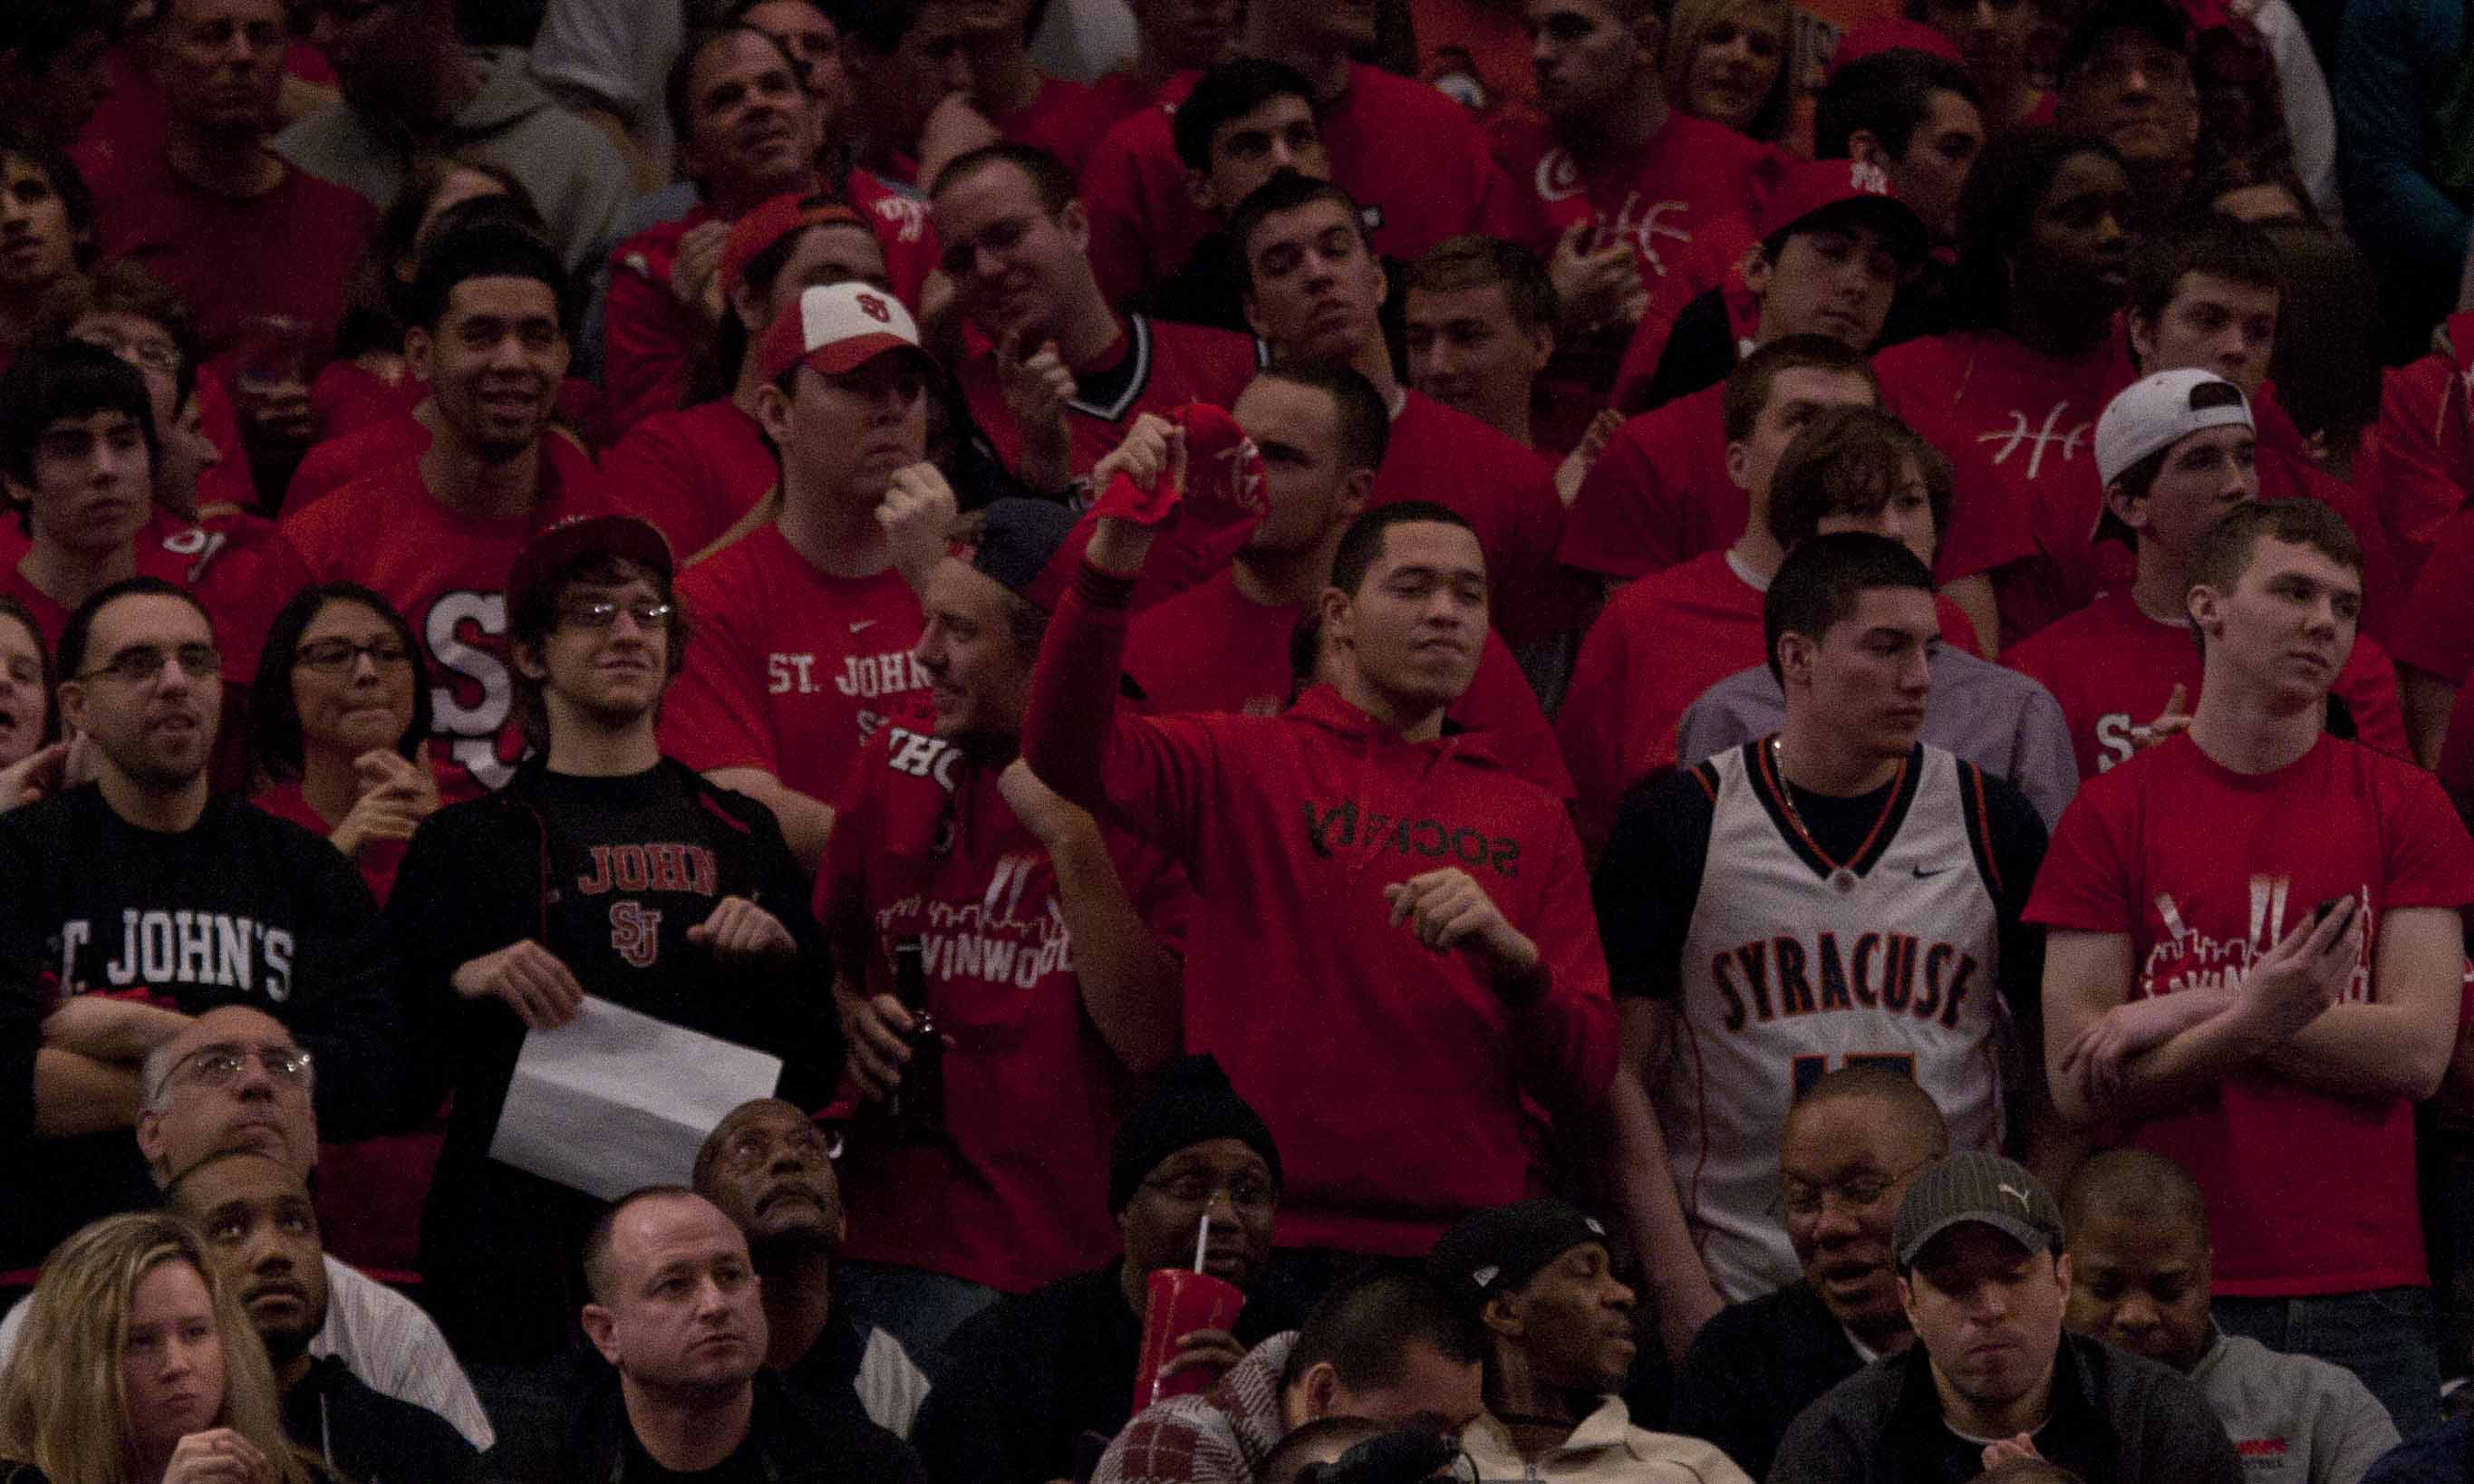 Red Zone isn't just seen at Madison Square Garden but at all events as well